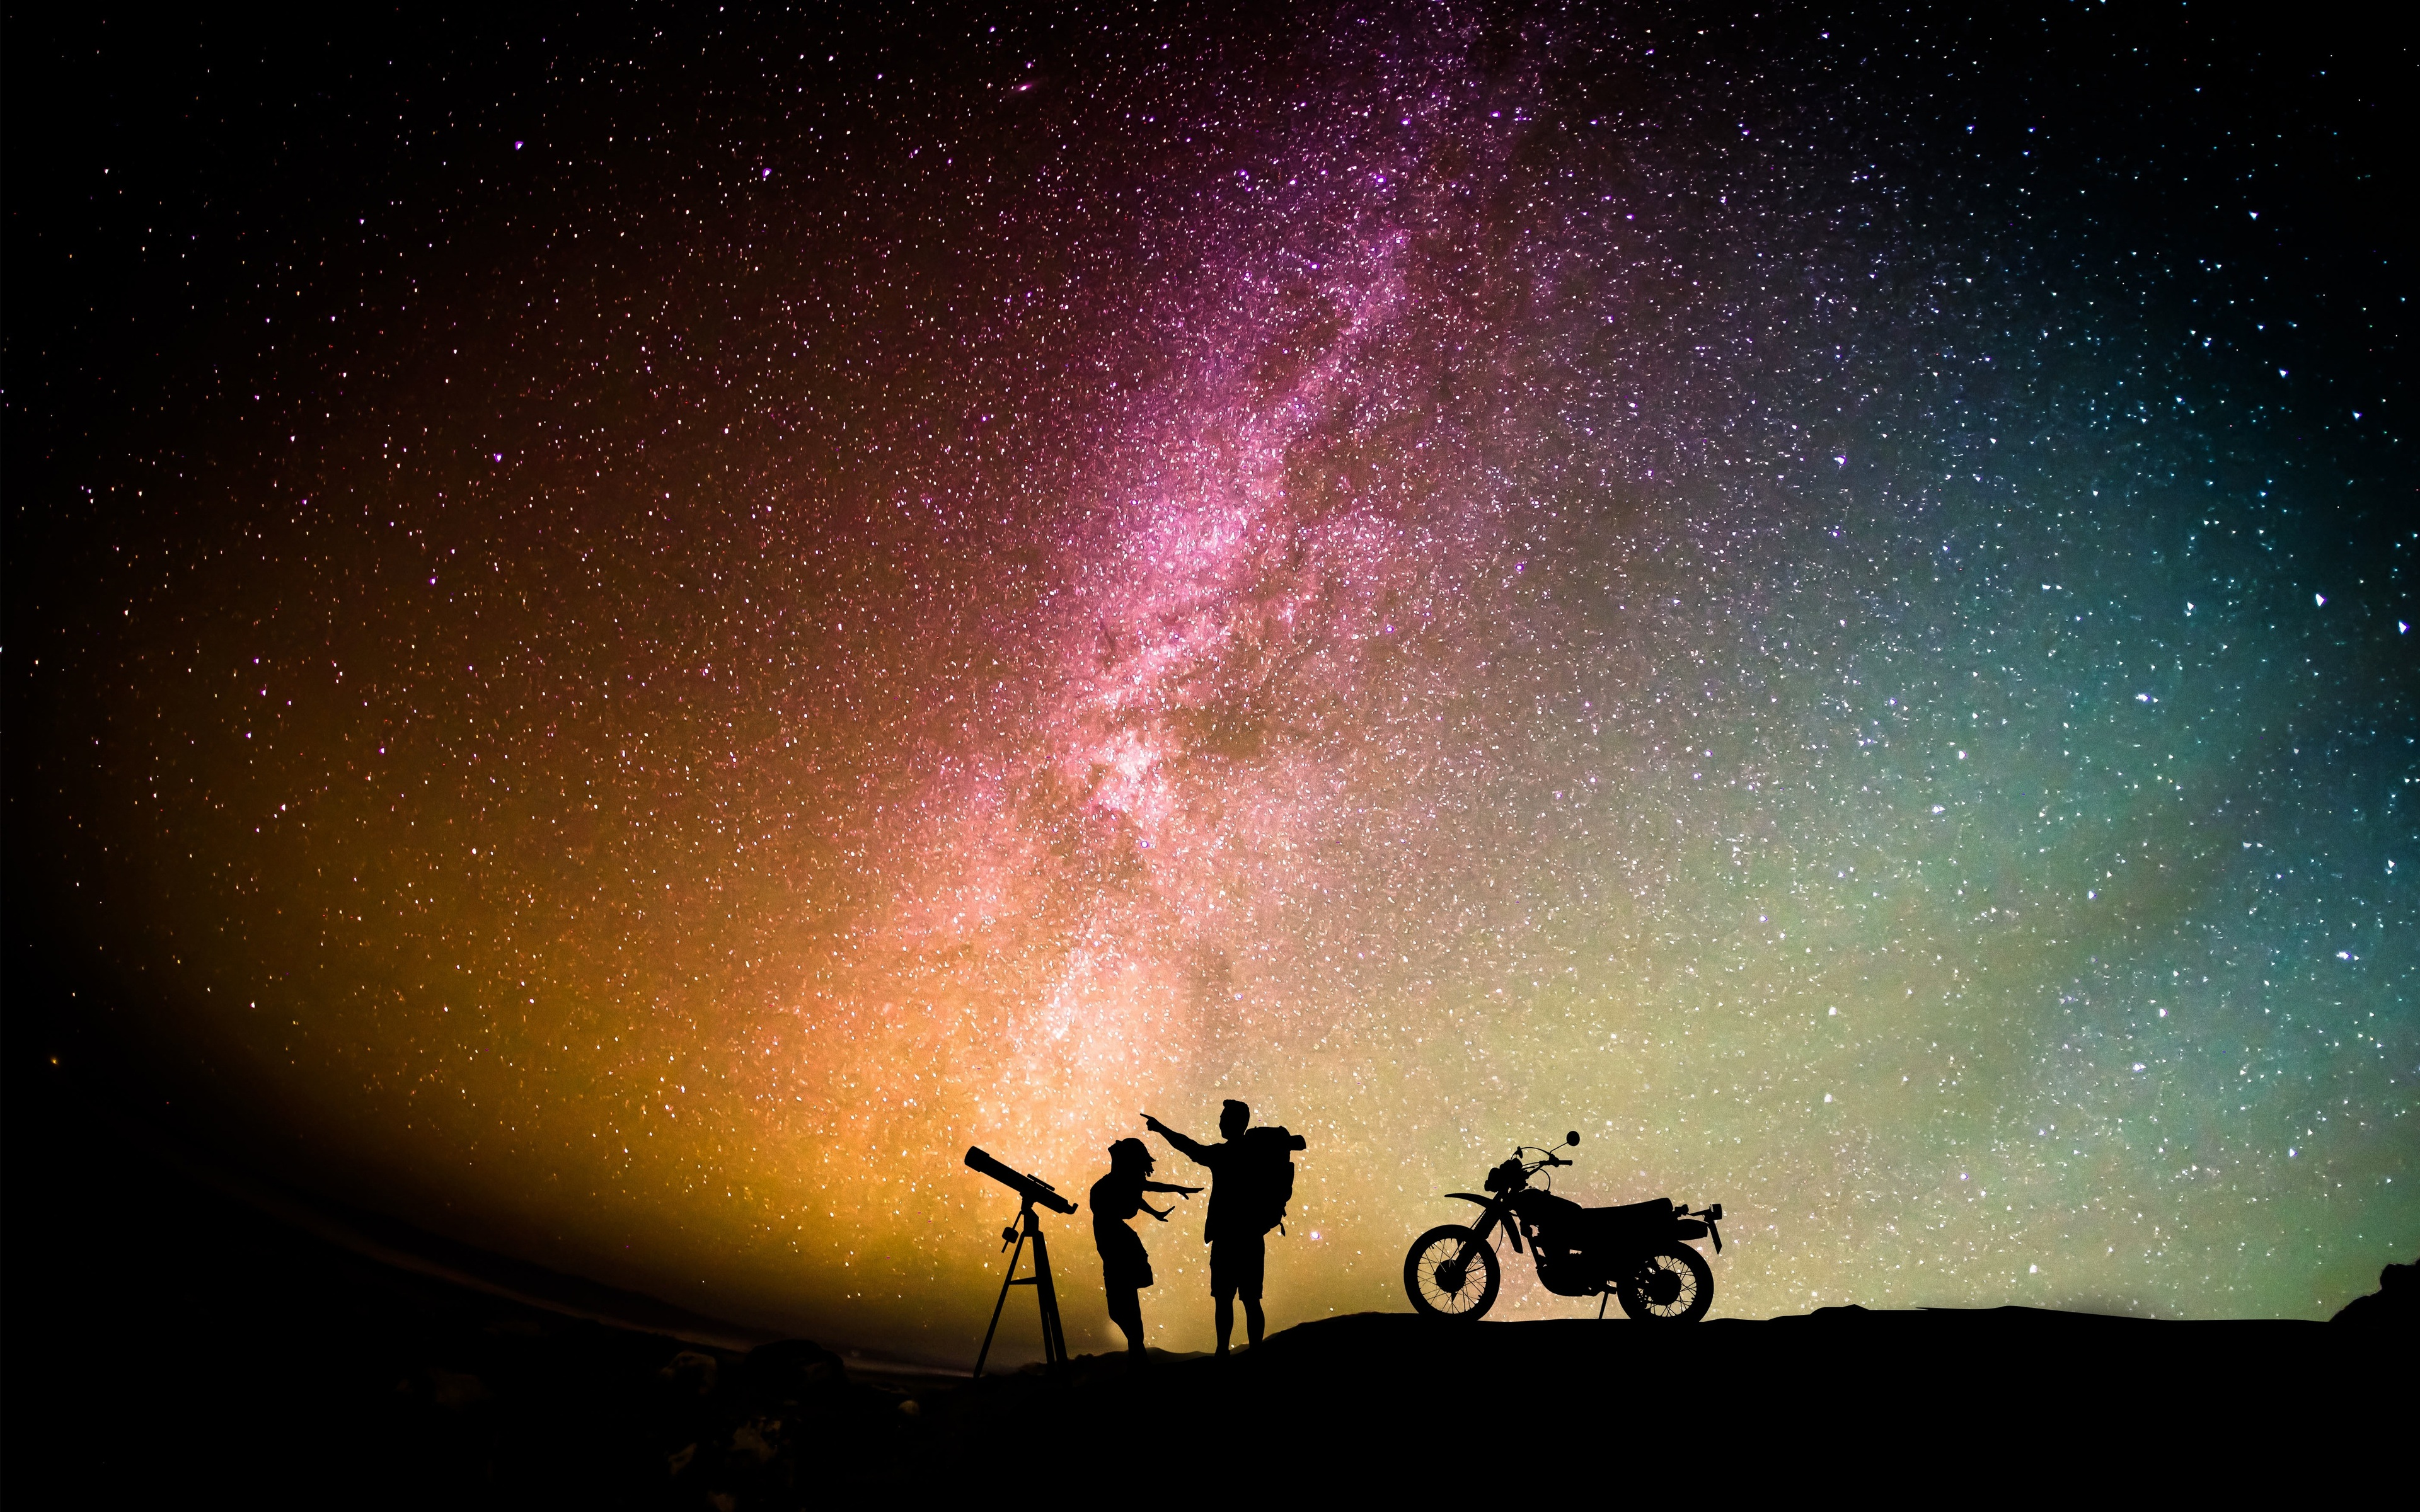 3840x2400 Couple Motorcylist Telescope Aurora Sky 4k Hd 4k Wallpapers Images Backgrounds Photos And Pictures